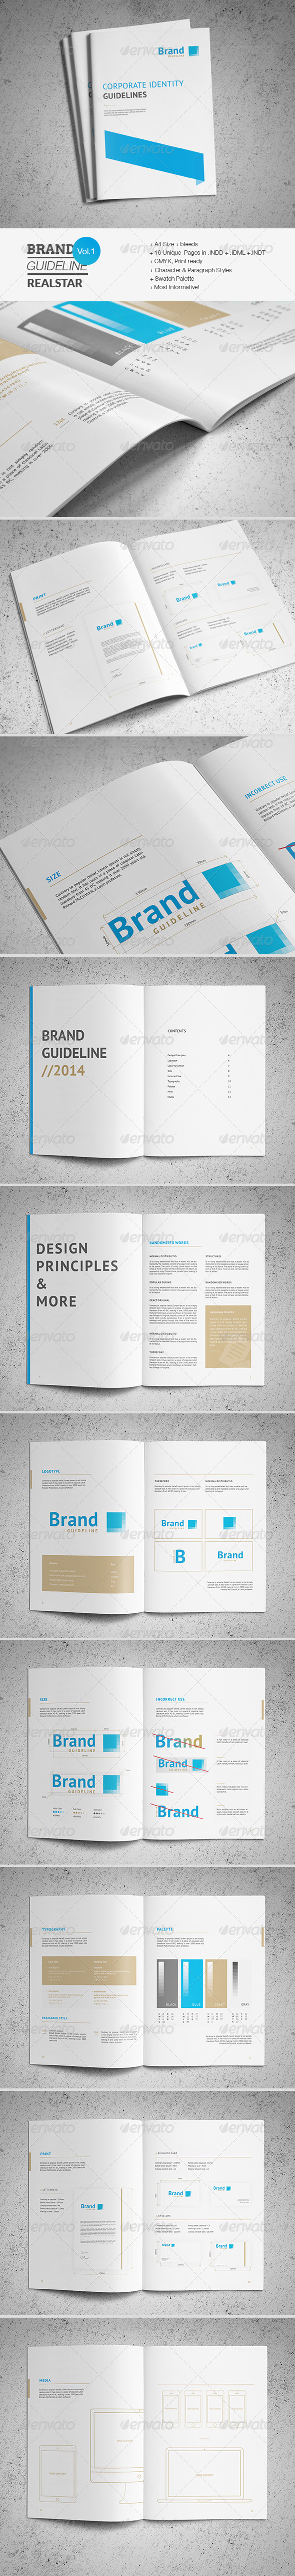 GraphicRiver Brand Guideline Template 7480156